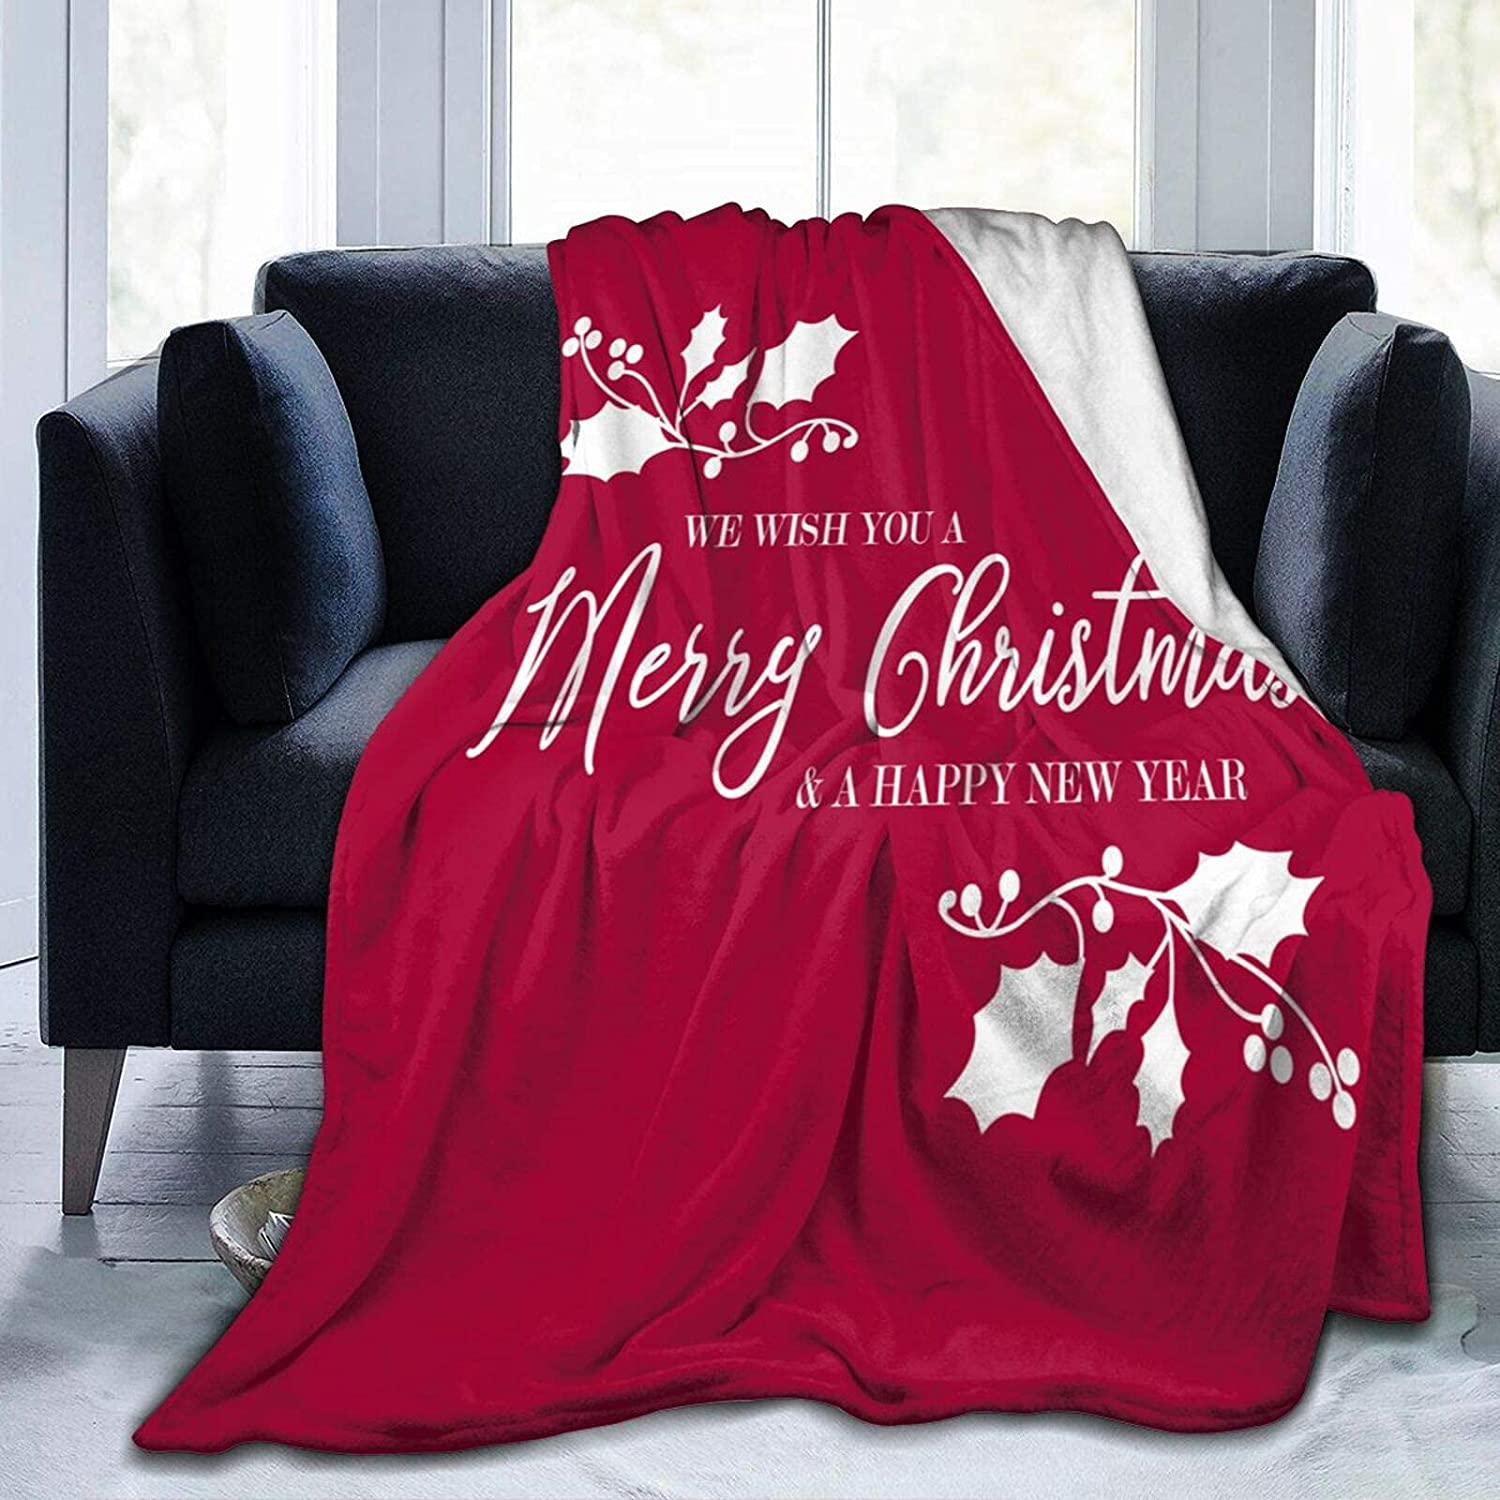 Fuzzy Throw Blanket Plush Fleece Max 44% OFF Unisex To Blankets Adults for Now free shipping